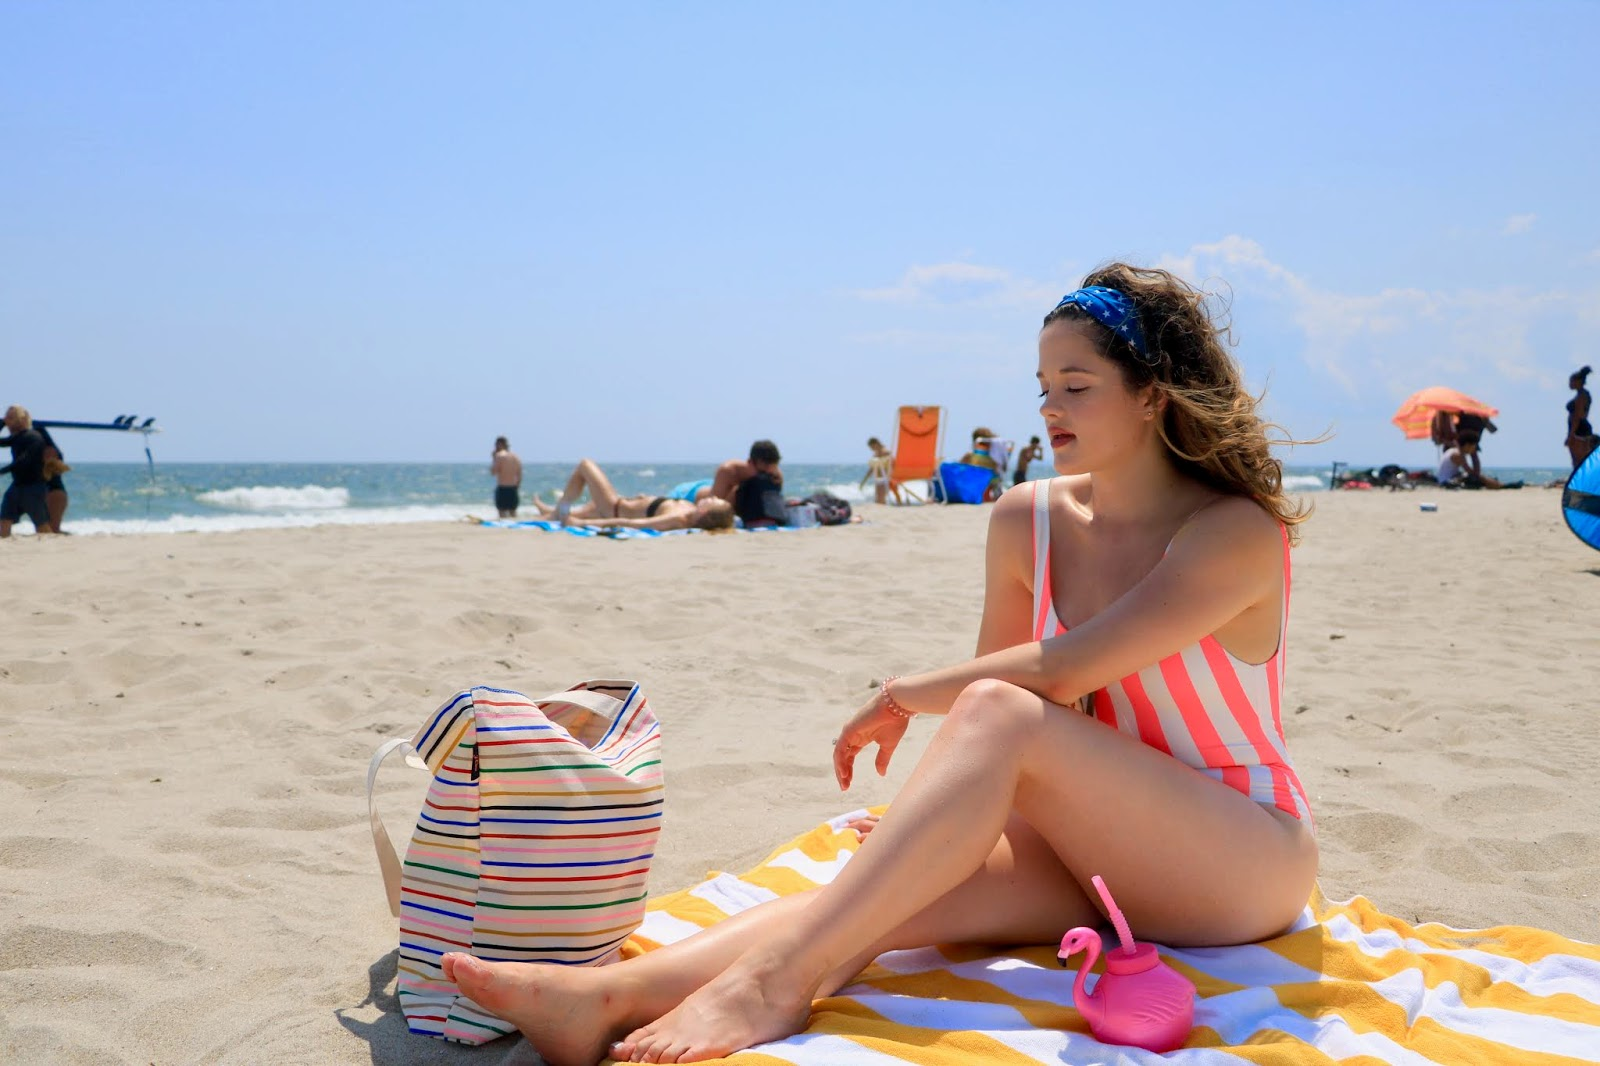 Nyc fashion blogger Kathleen Harper on the beach with her striped swimsuit, striped beach bag, and striped towel.